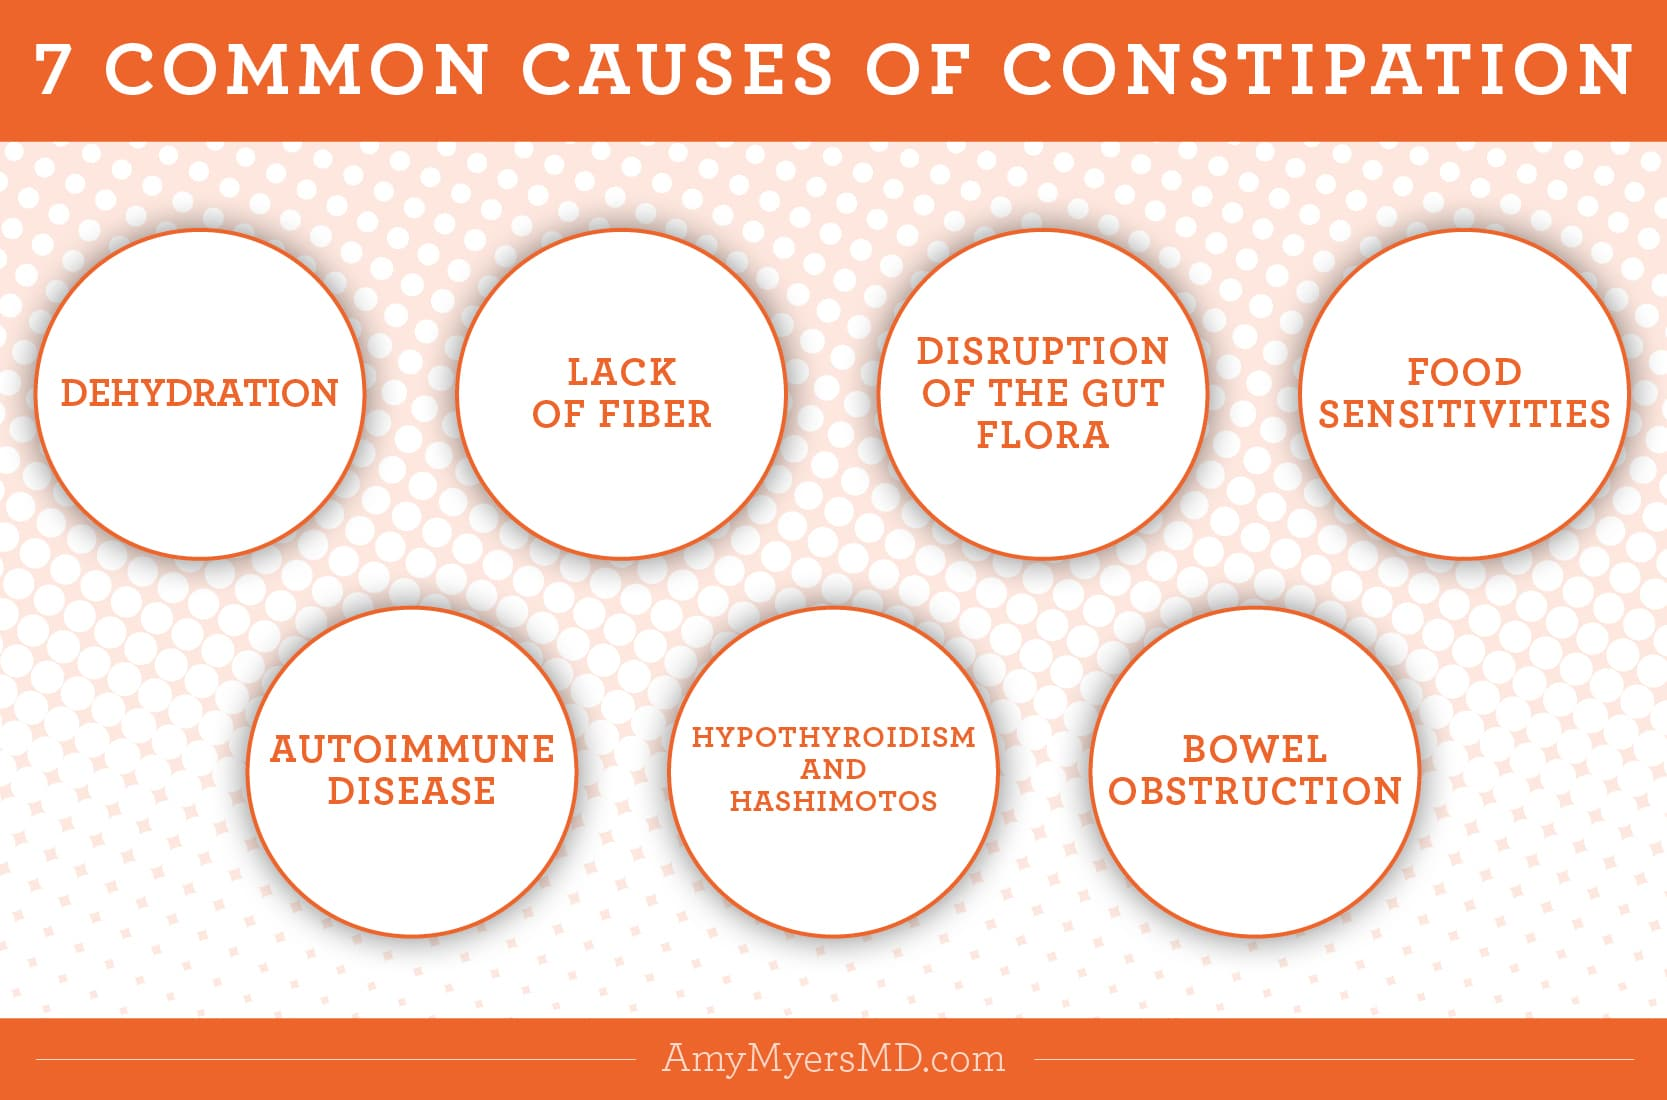 7 Common Causes of Constipation and 7 Ways to Support